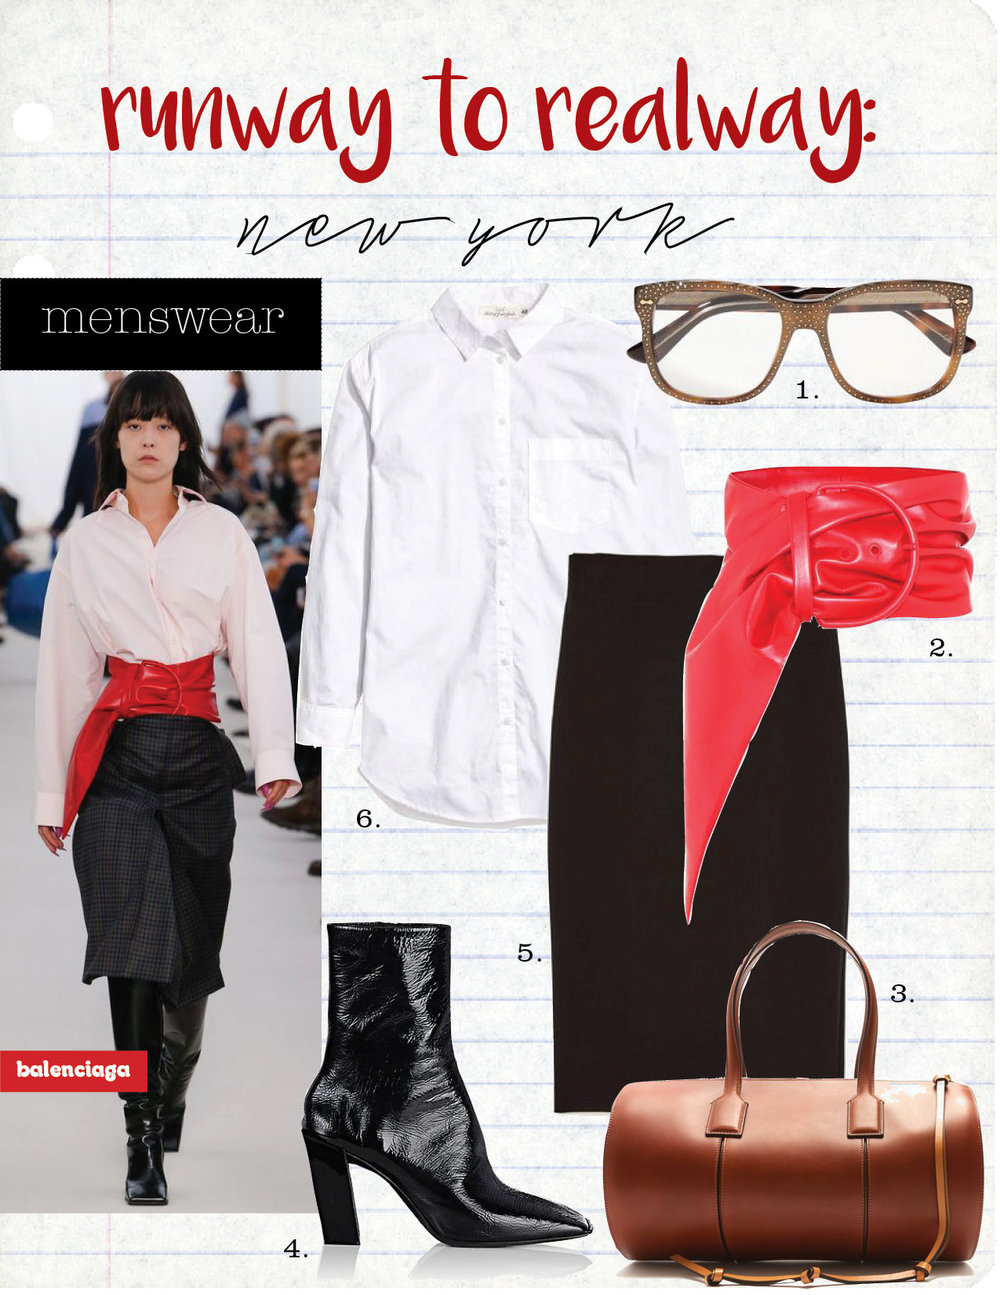 1. gucci crystal- embellished square- frame acetate glasses, $700,  net-a-porter.com  2. balenciaga scarf leather belt, $825,  mytheresa.com  3. loewe barrel medium leather tote, $1868,  matchesfashion.com  4. balenciaga inclined-heel patent leather ankle booties, $1015,  barneys.com                             5. zara pencil skirt, $49,  zara.com  6. h&m wide-cut cotton shirt, $19,  hm.com